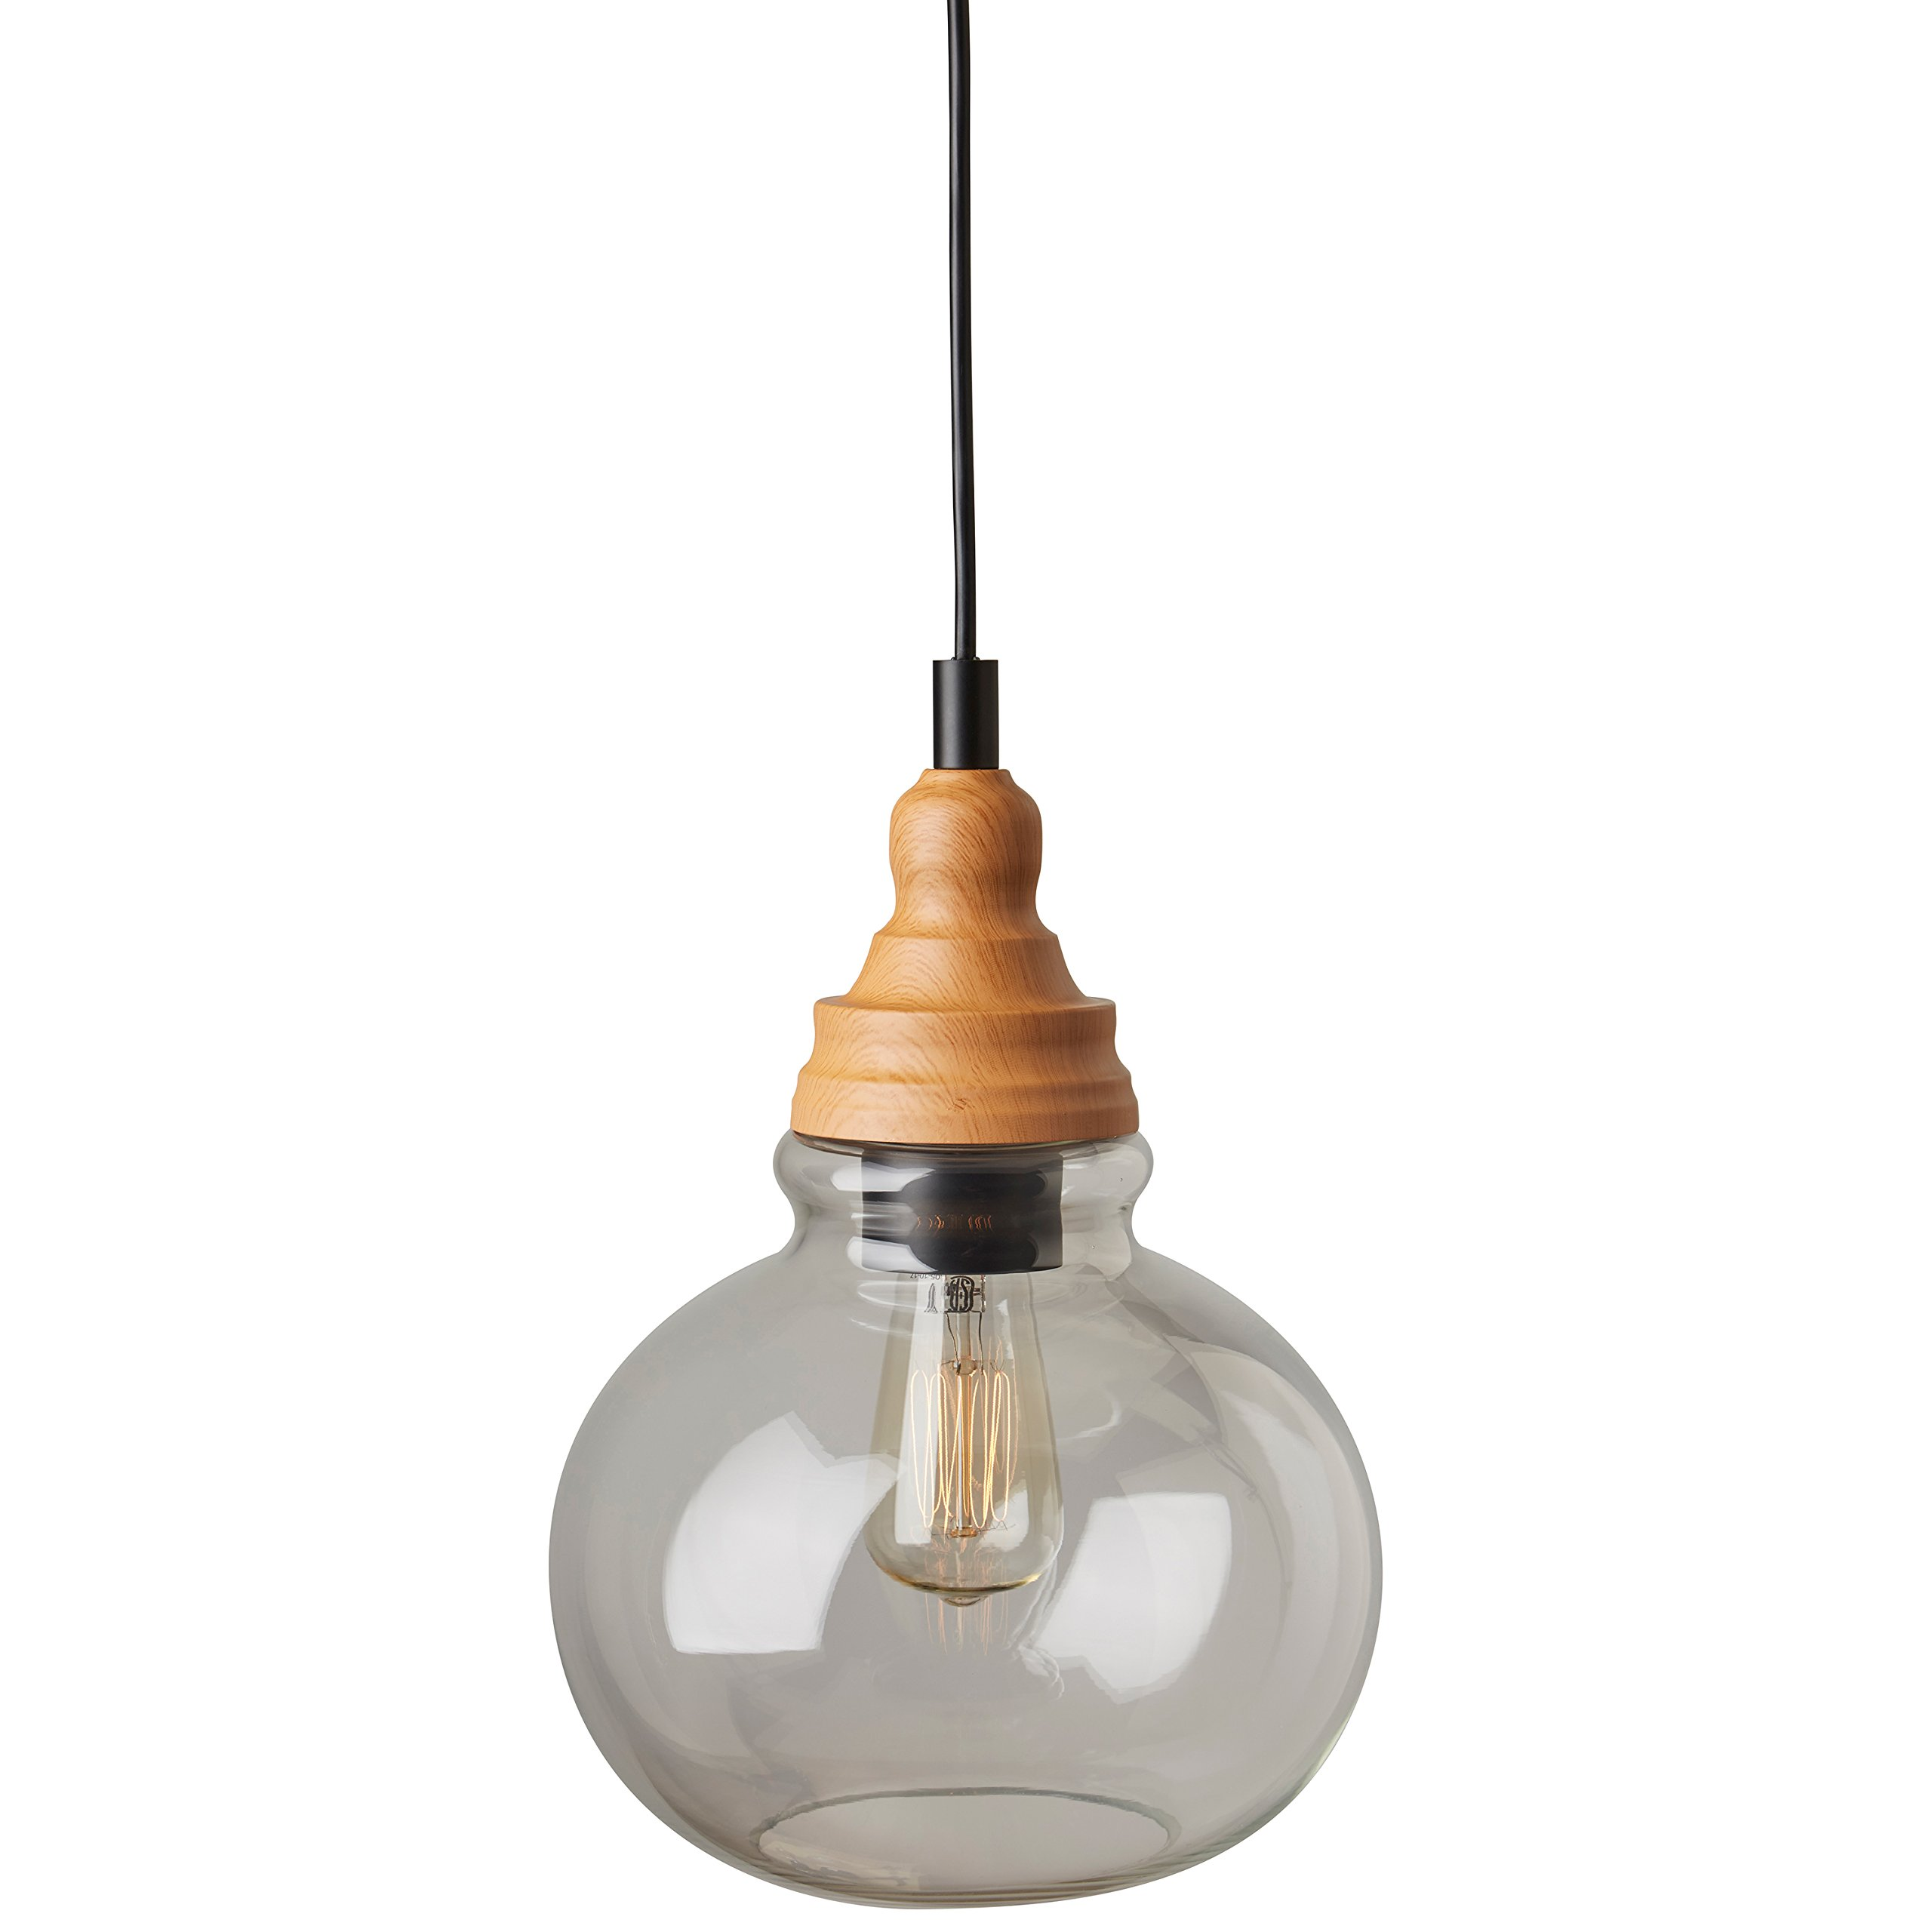 Rivet Glass Pendant With Bulb, 14.25''-60''H, Brown and Black by Rivet (Image #5)